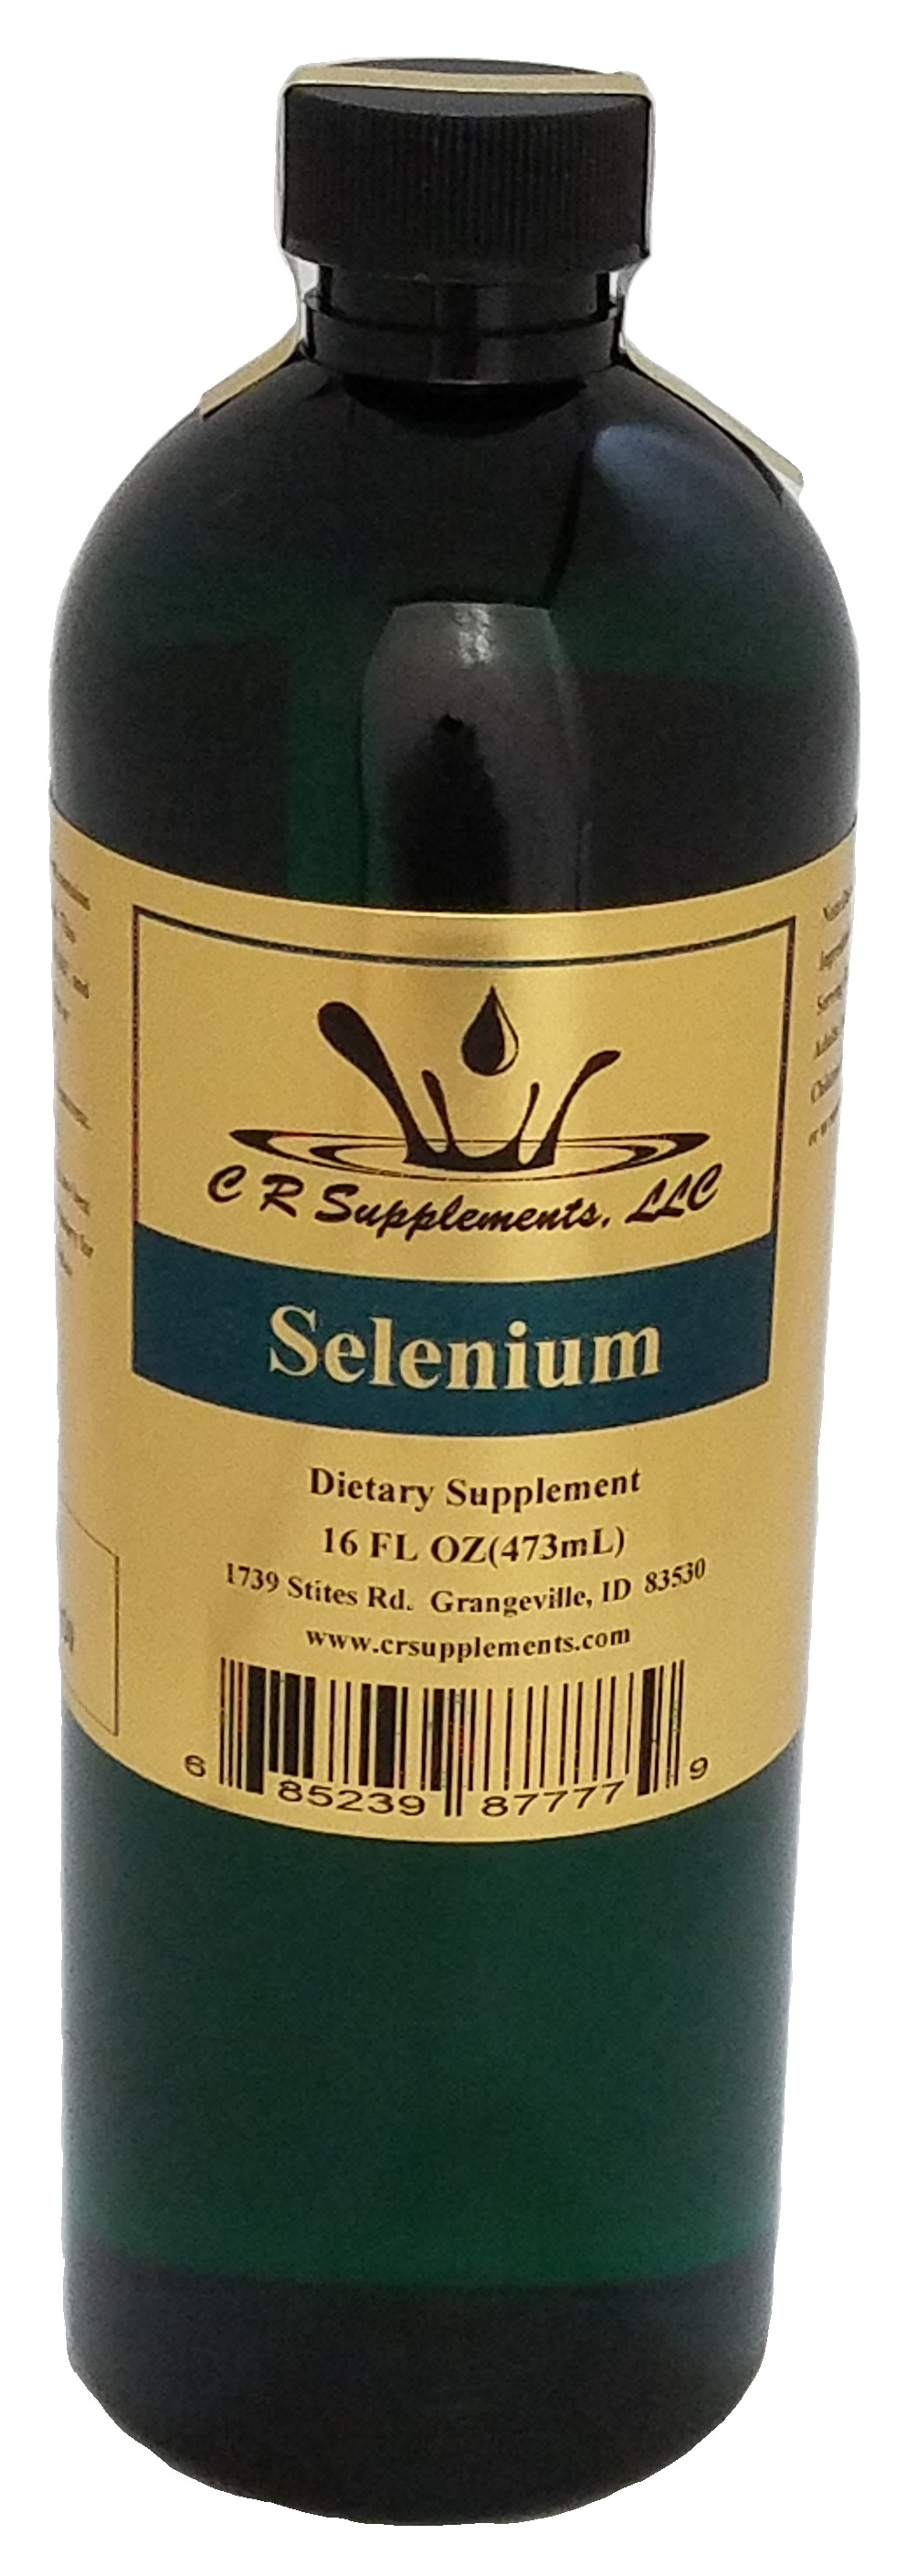 Selenium Dietary Supplement